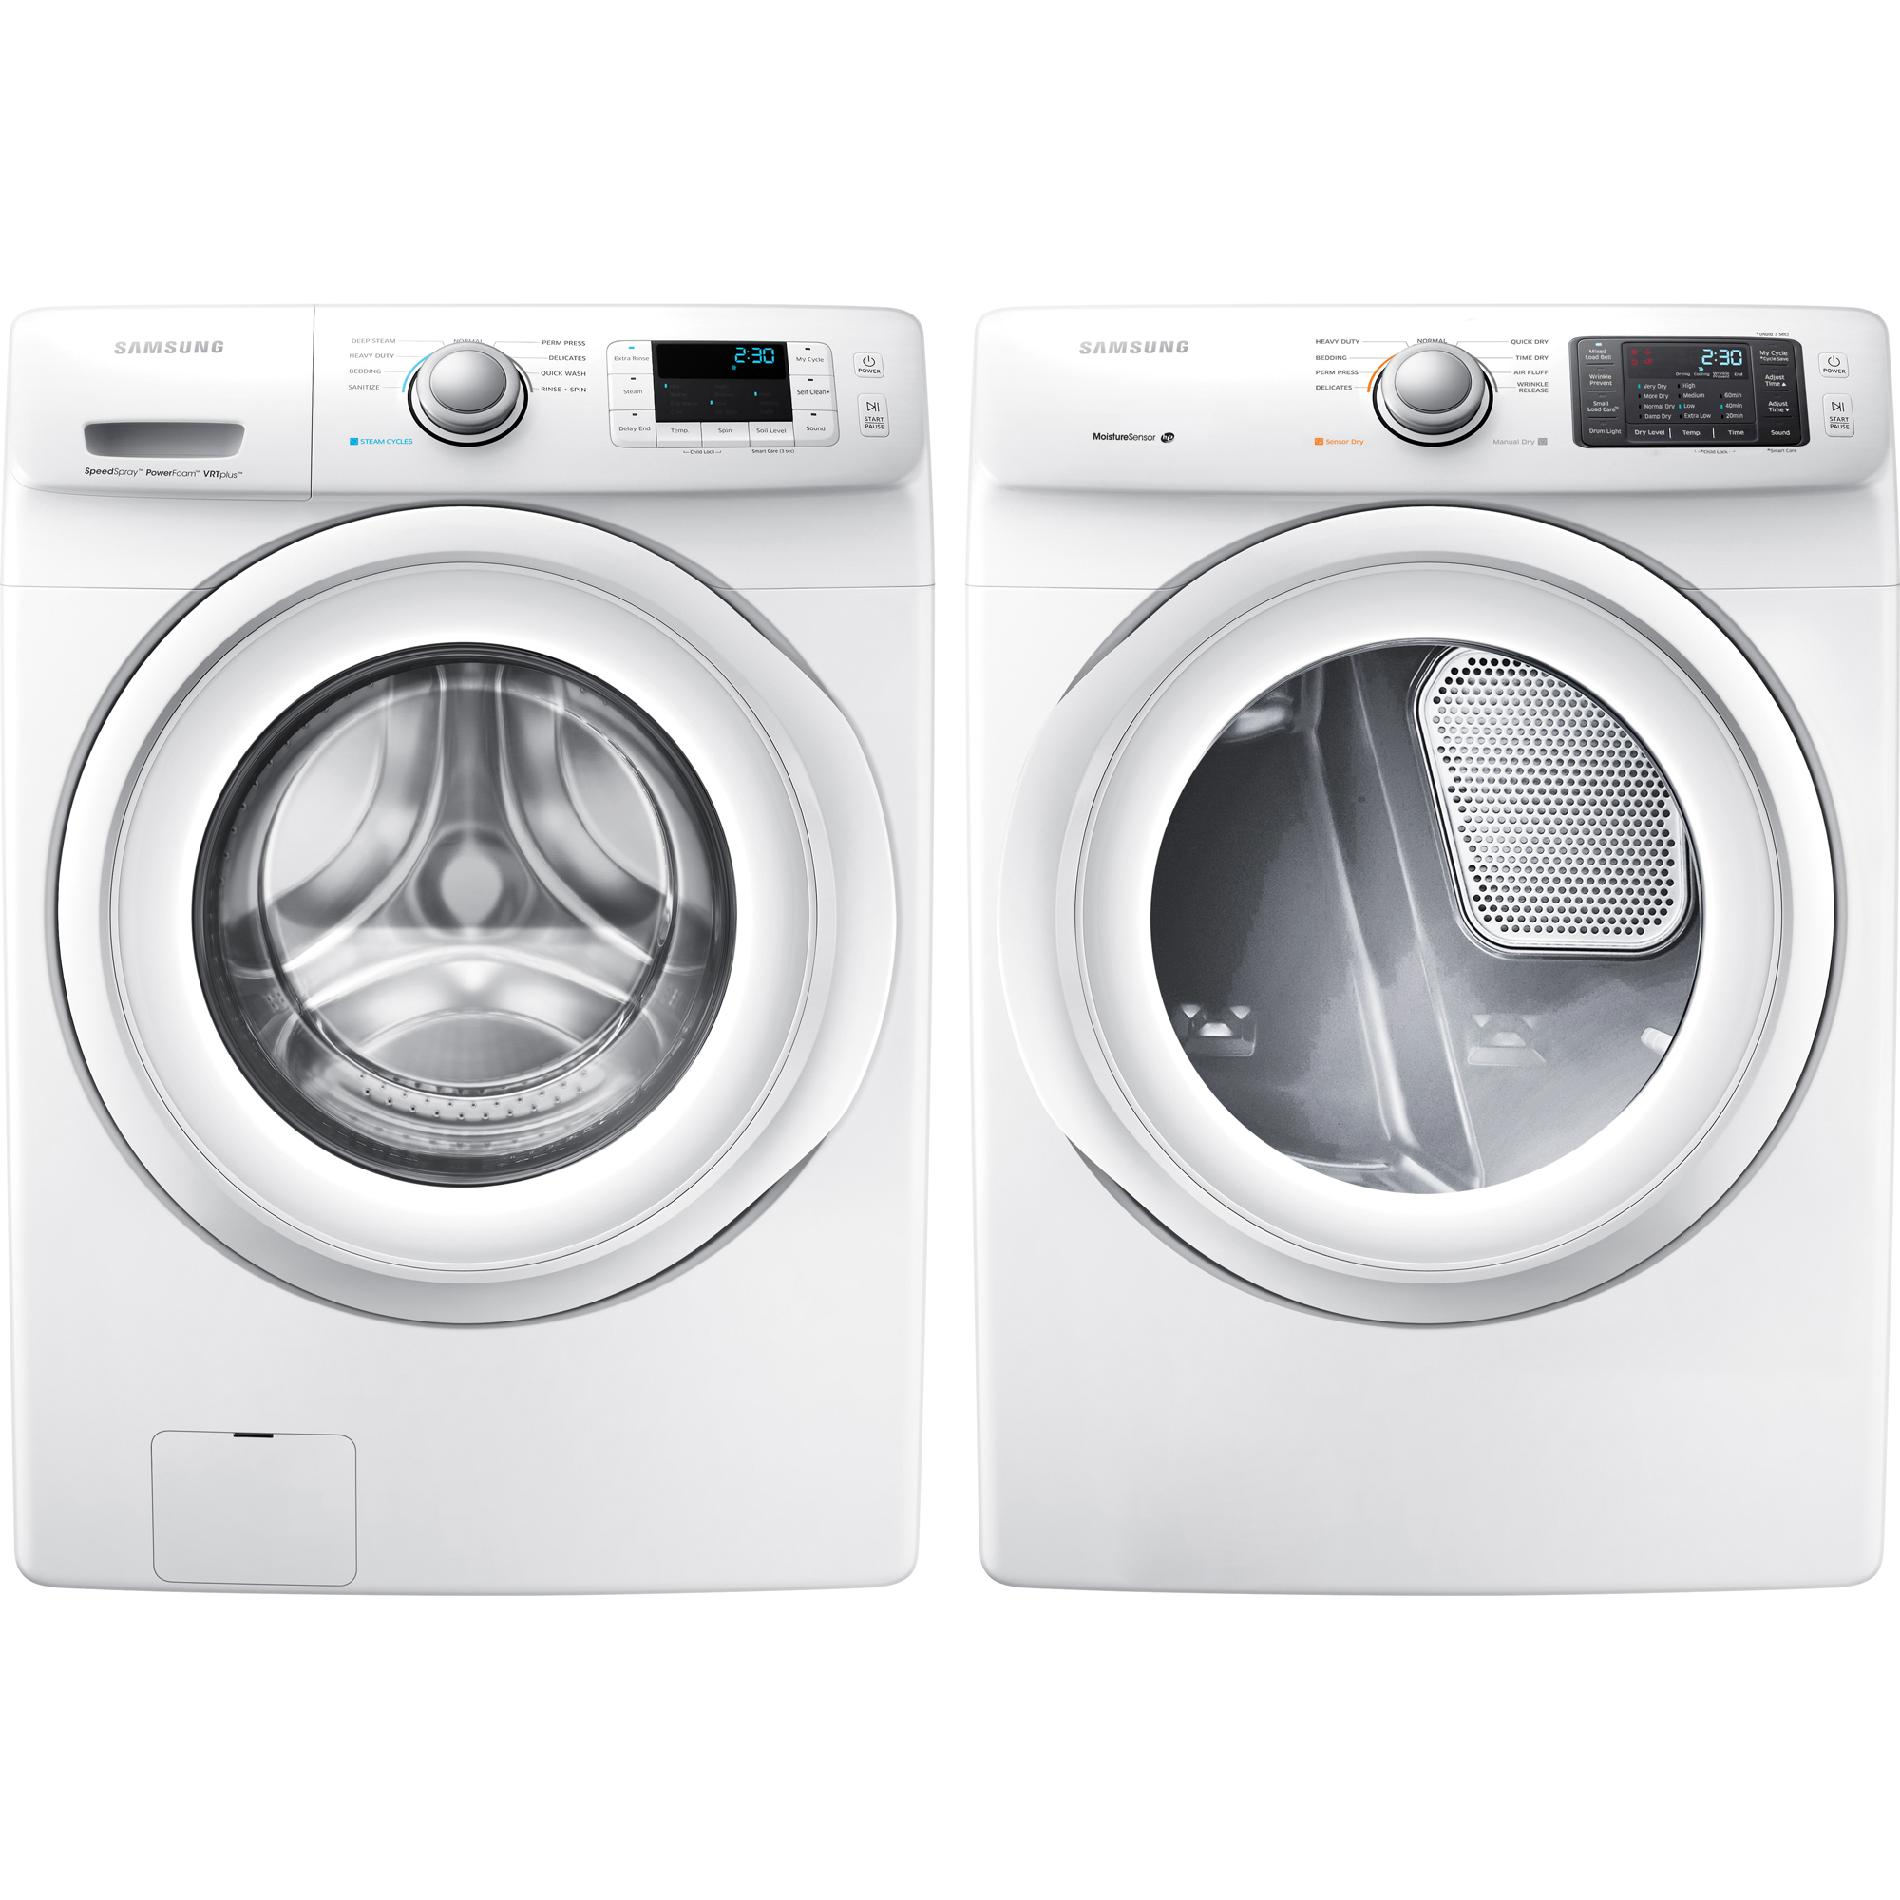 Samsung DV42H5000EW 7.5 cu. ft. Front-Load Electric Dryer - White